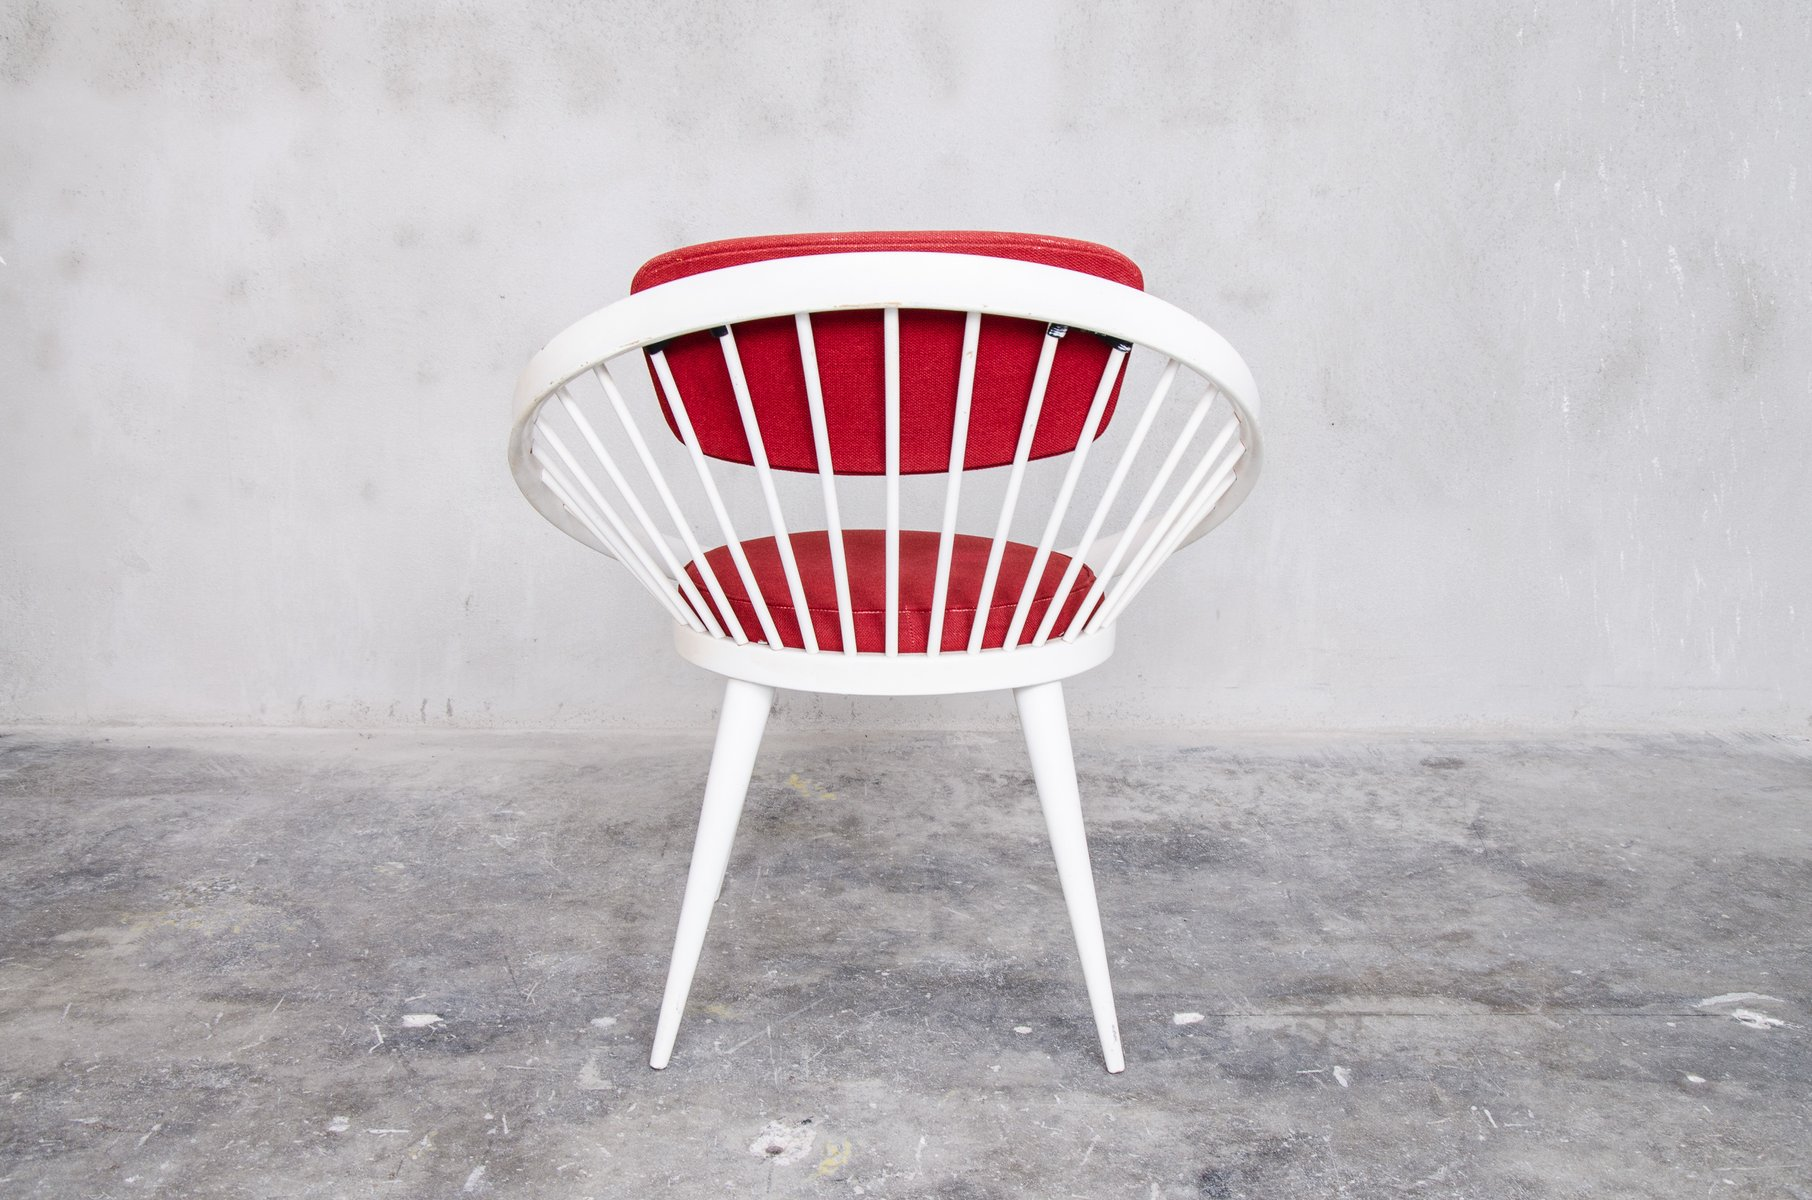 Red & White Circle Chair by Yngve Ekstrom for Swedese 1960s for